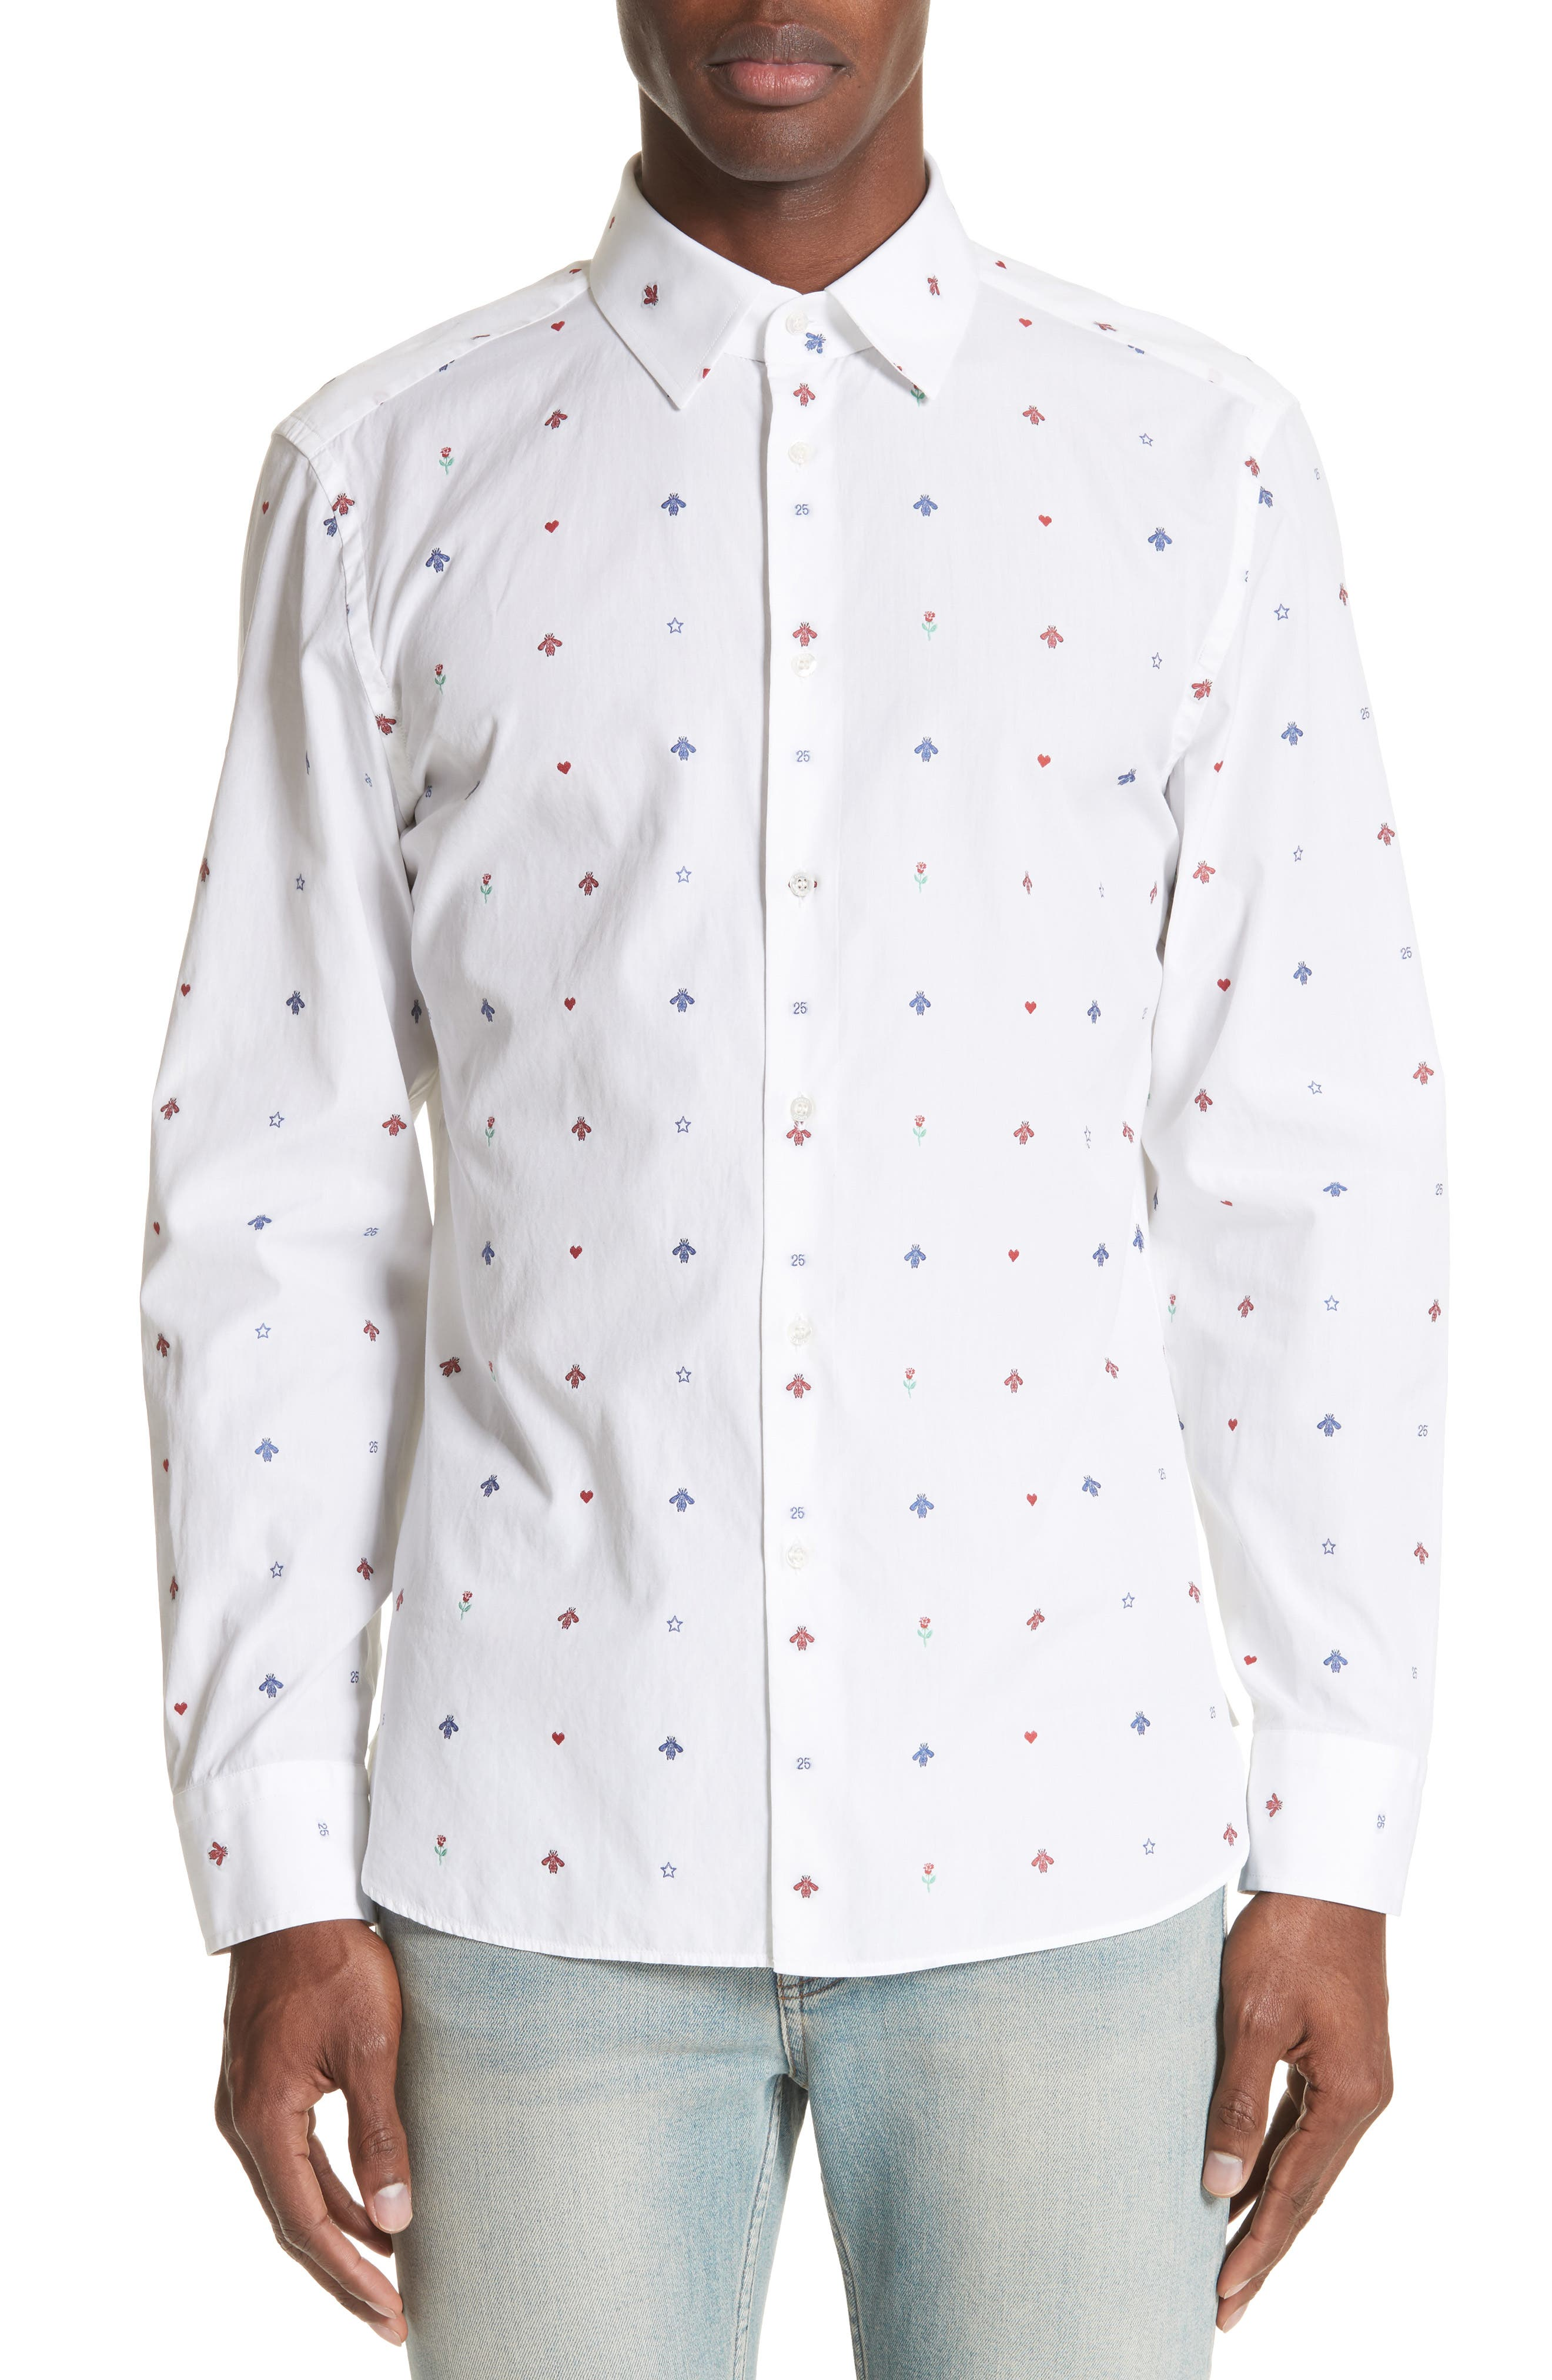 Allover Bee Print Woven Shirt,                             Main thumbnail 1, color,                             9000 WHITE